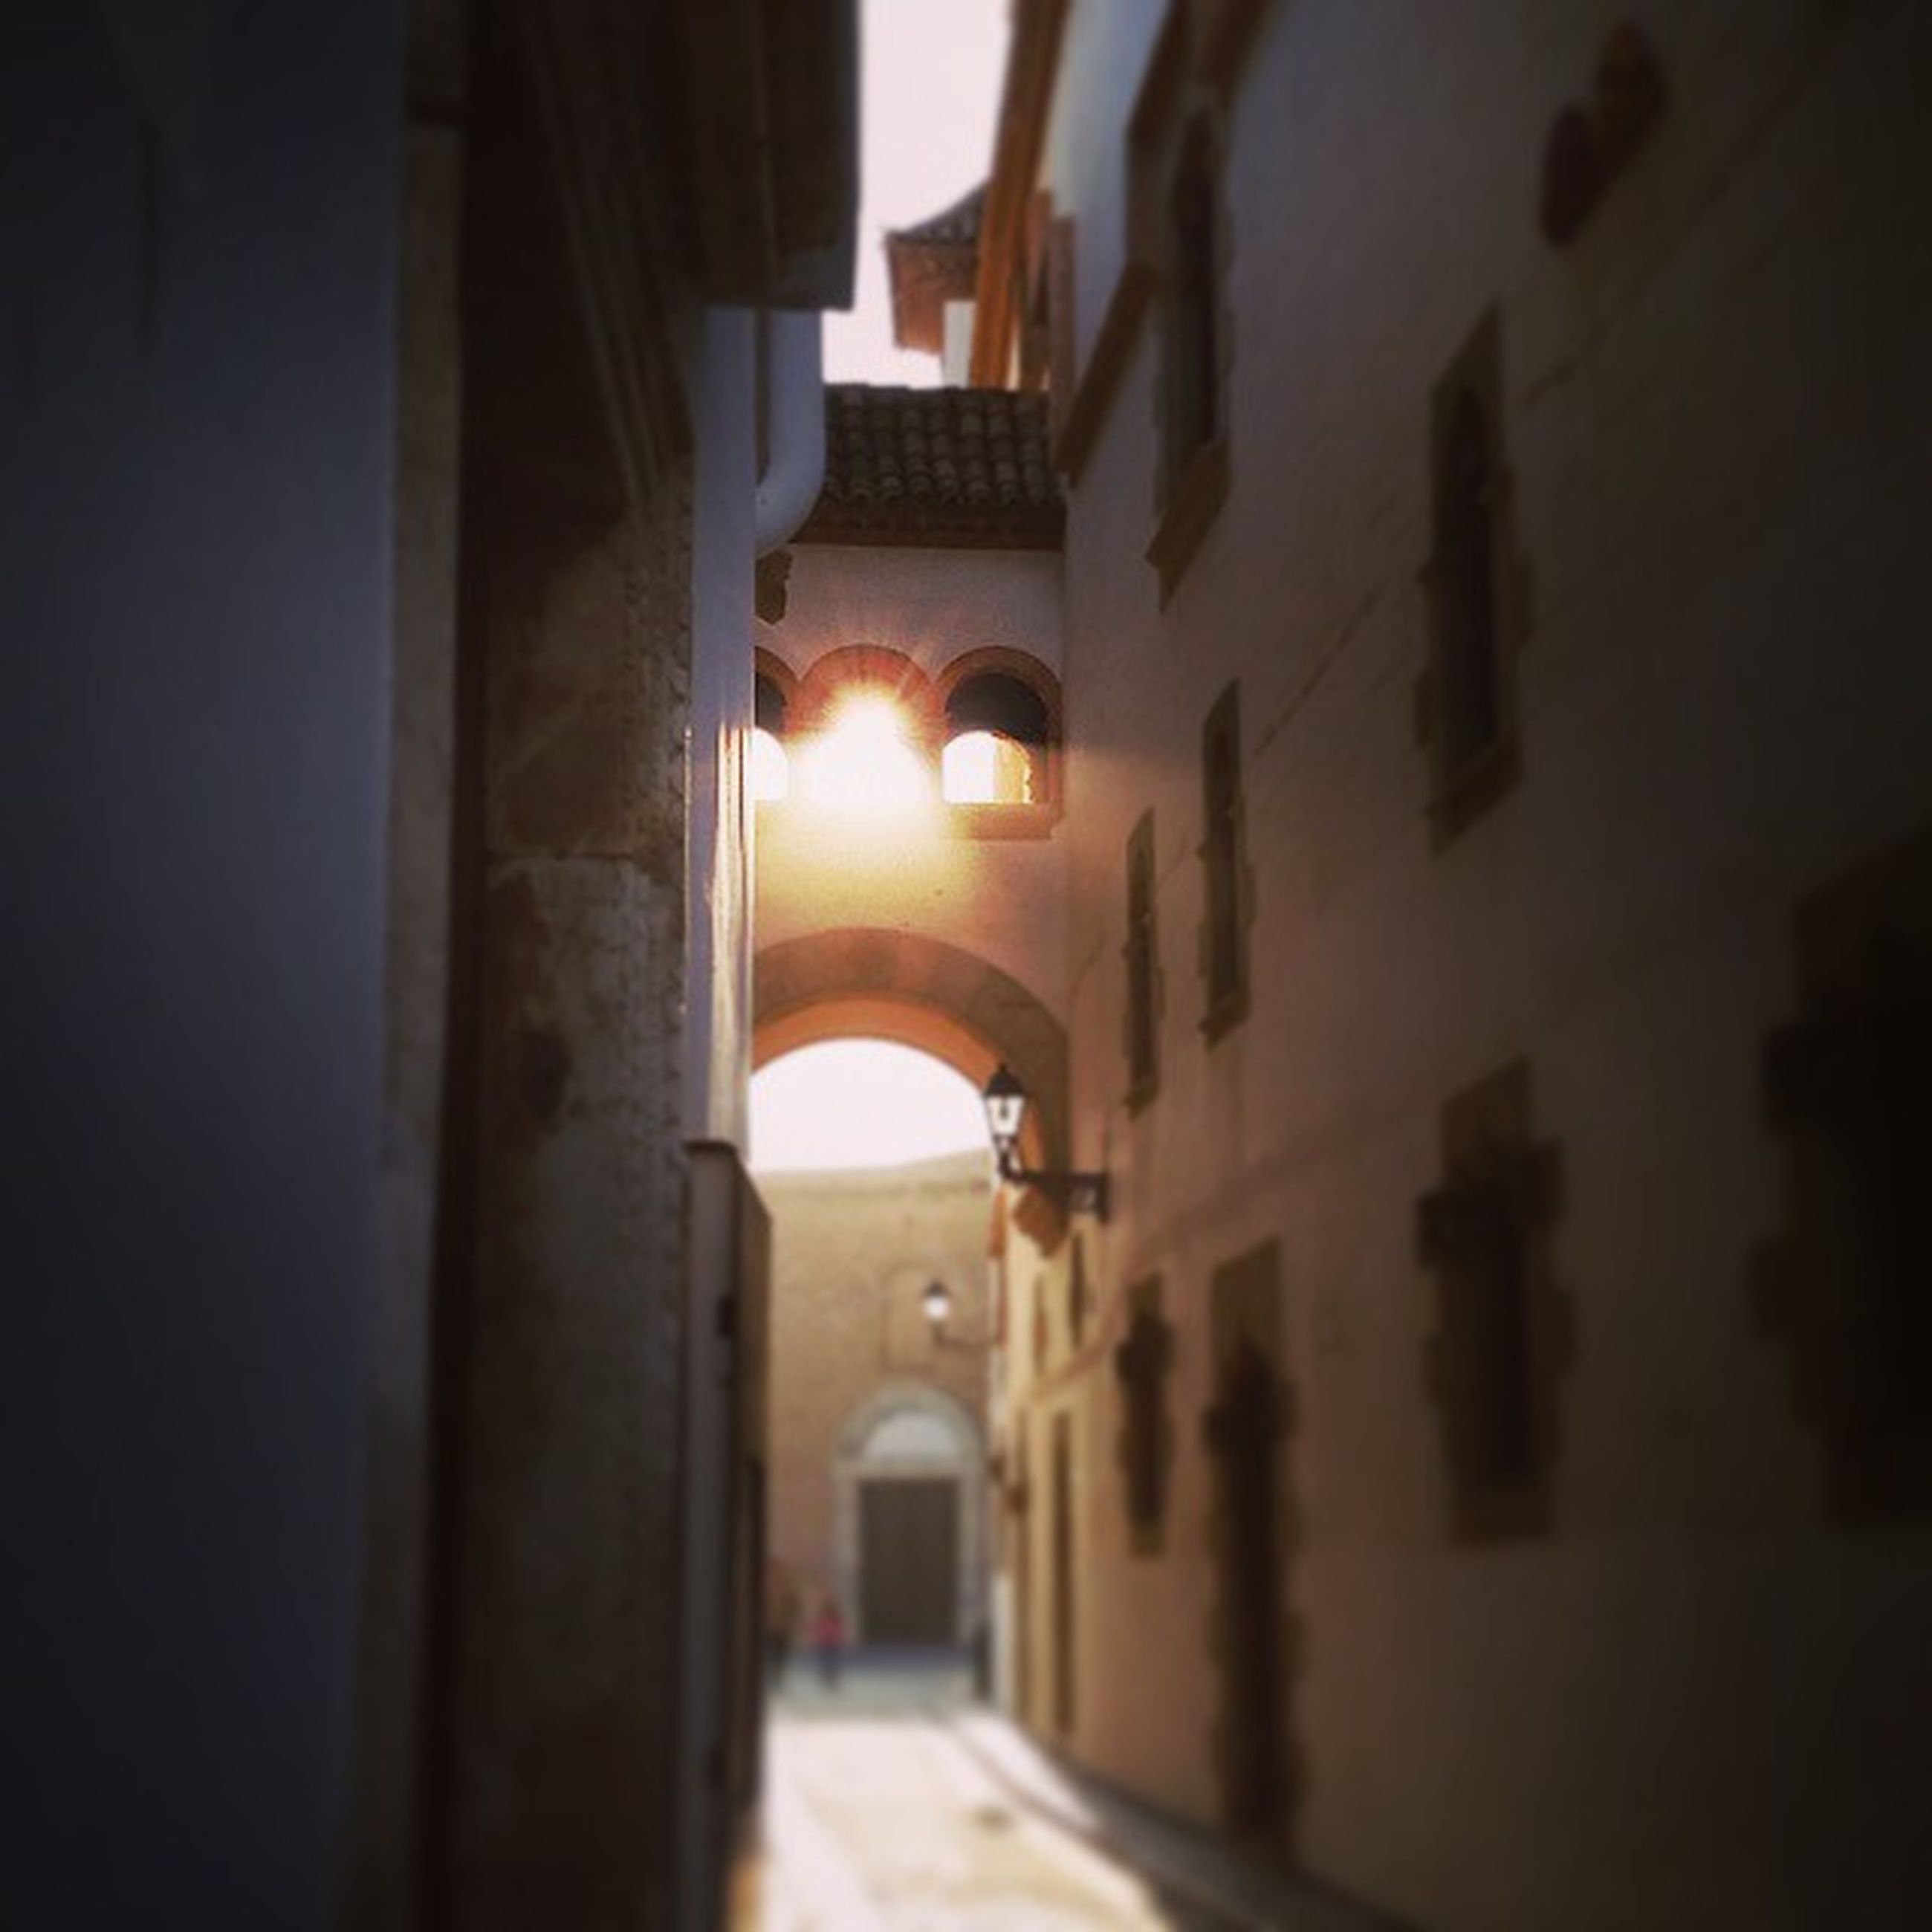 architecture, built structure, building exterior, illuminated, the way forward, night, indoors, building, lighting equipment, narrow, arch, residential building, corridor, diminishing perspective, alley, residential structure, empty, house, no people, dark